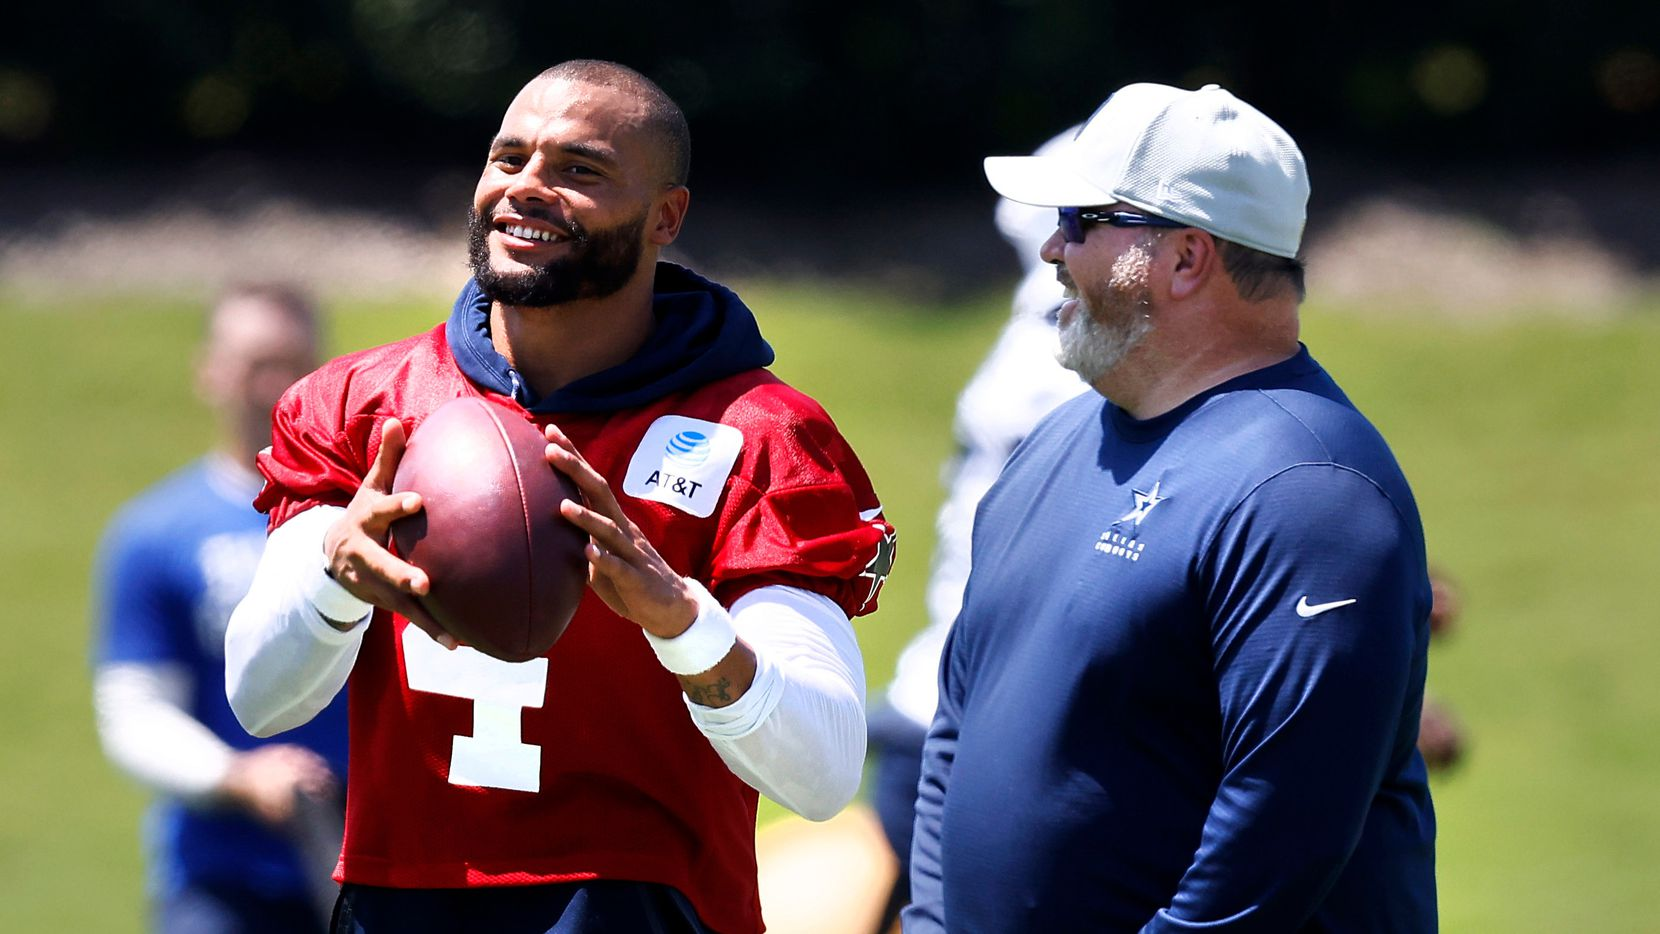 Dallas Cowboys head coach Mike McCarthy and  quarterback Dak Prescott (4) laugh following Training Camp practice at The Star in Frisco, Texas, Wednesday, August 25, 2021.